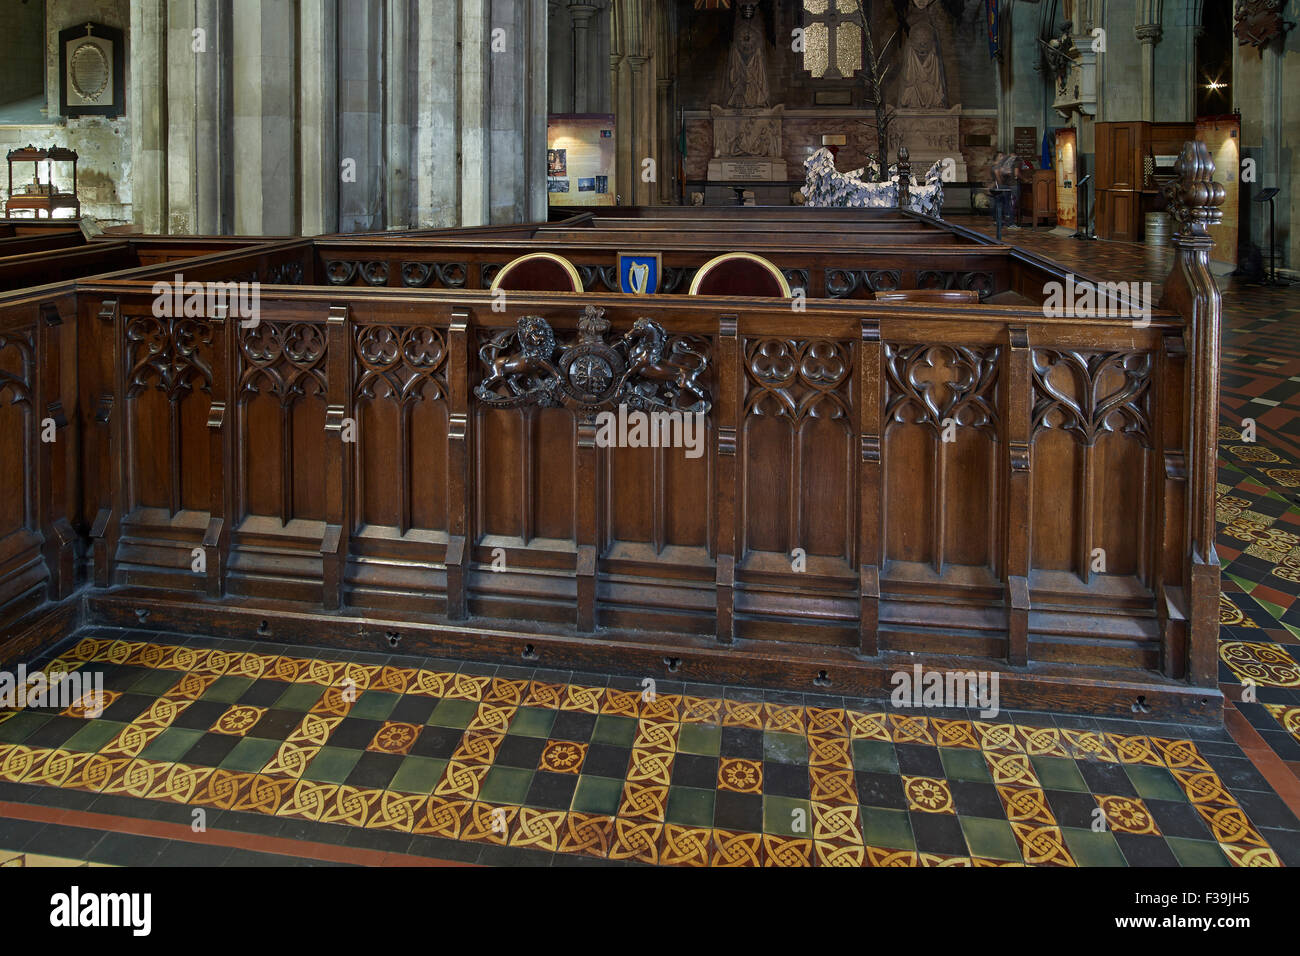 St Patrick's Cathedral State pew - Stock Image